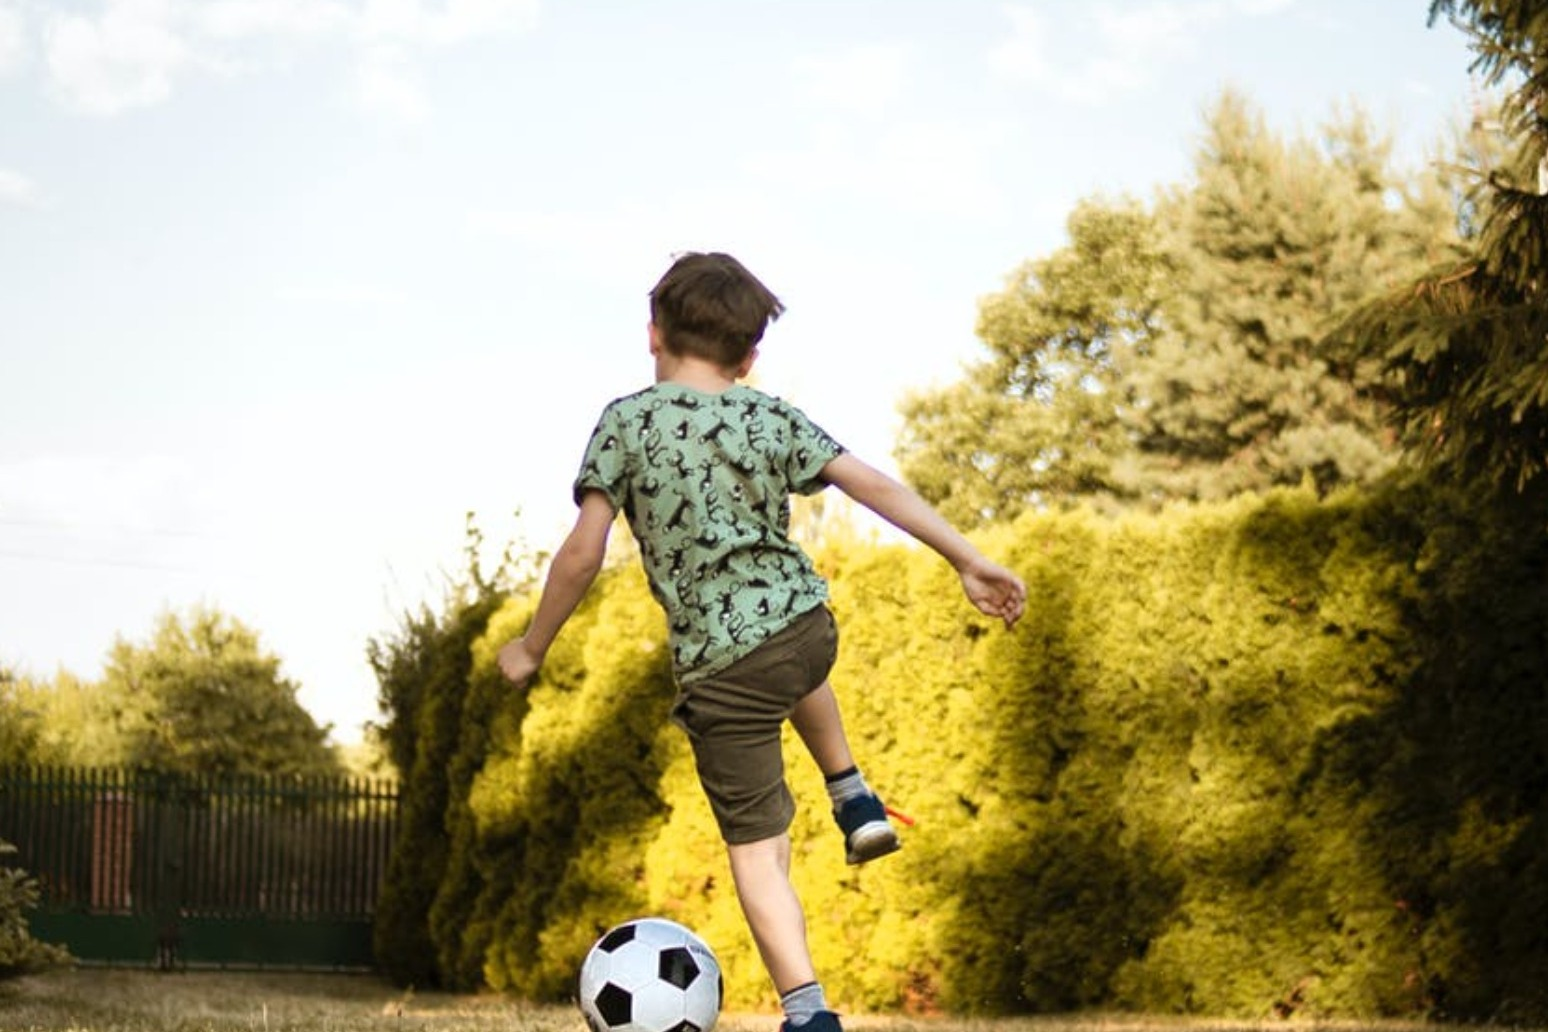 FA 'far too slow' to introduce proper child protection measures – Sheldon Review